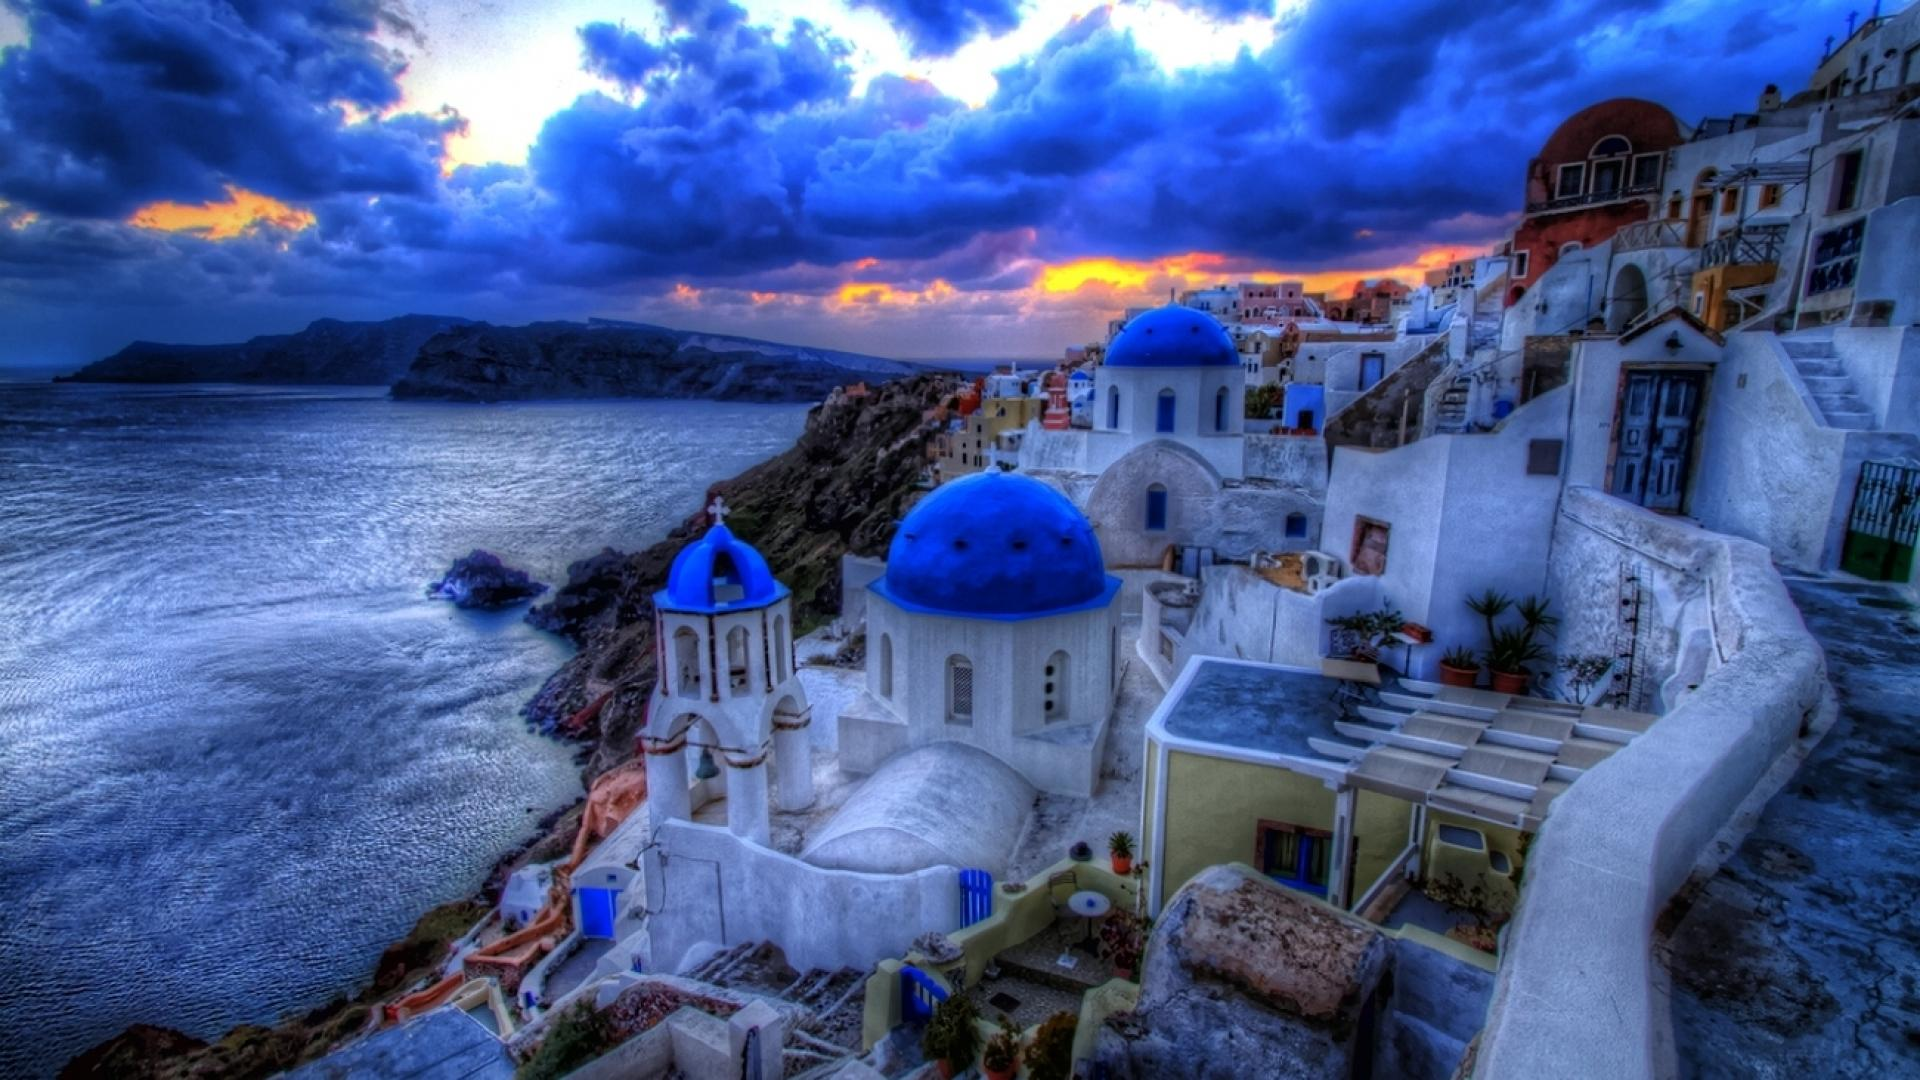 Santorini Greece Wallpapers   Top Santorini Greece 1920x1080